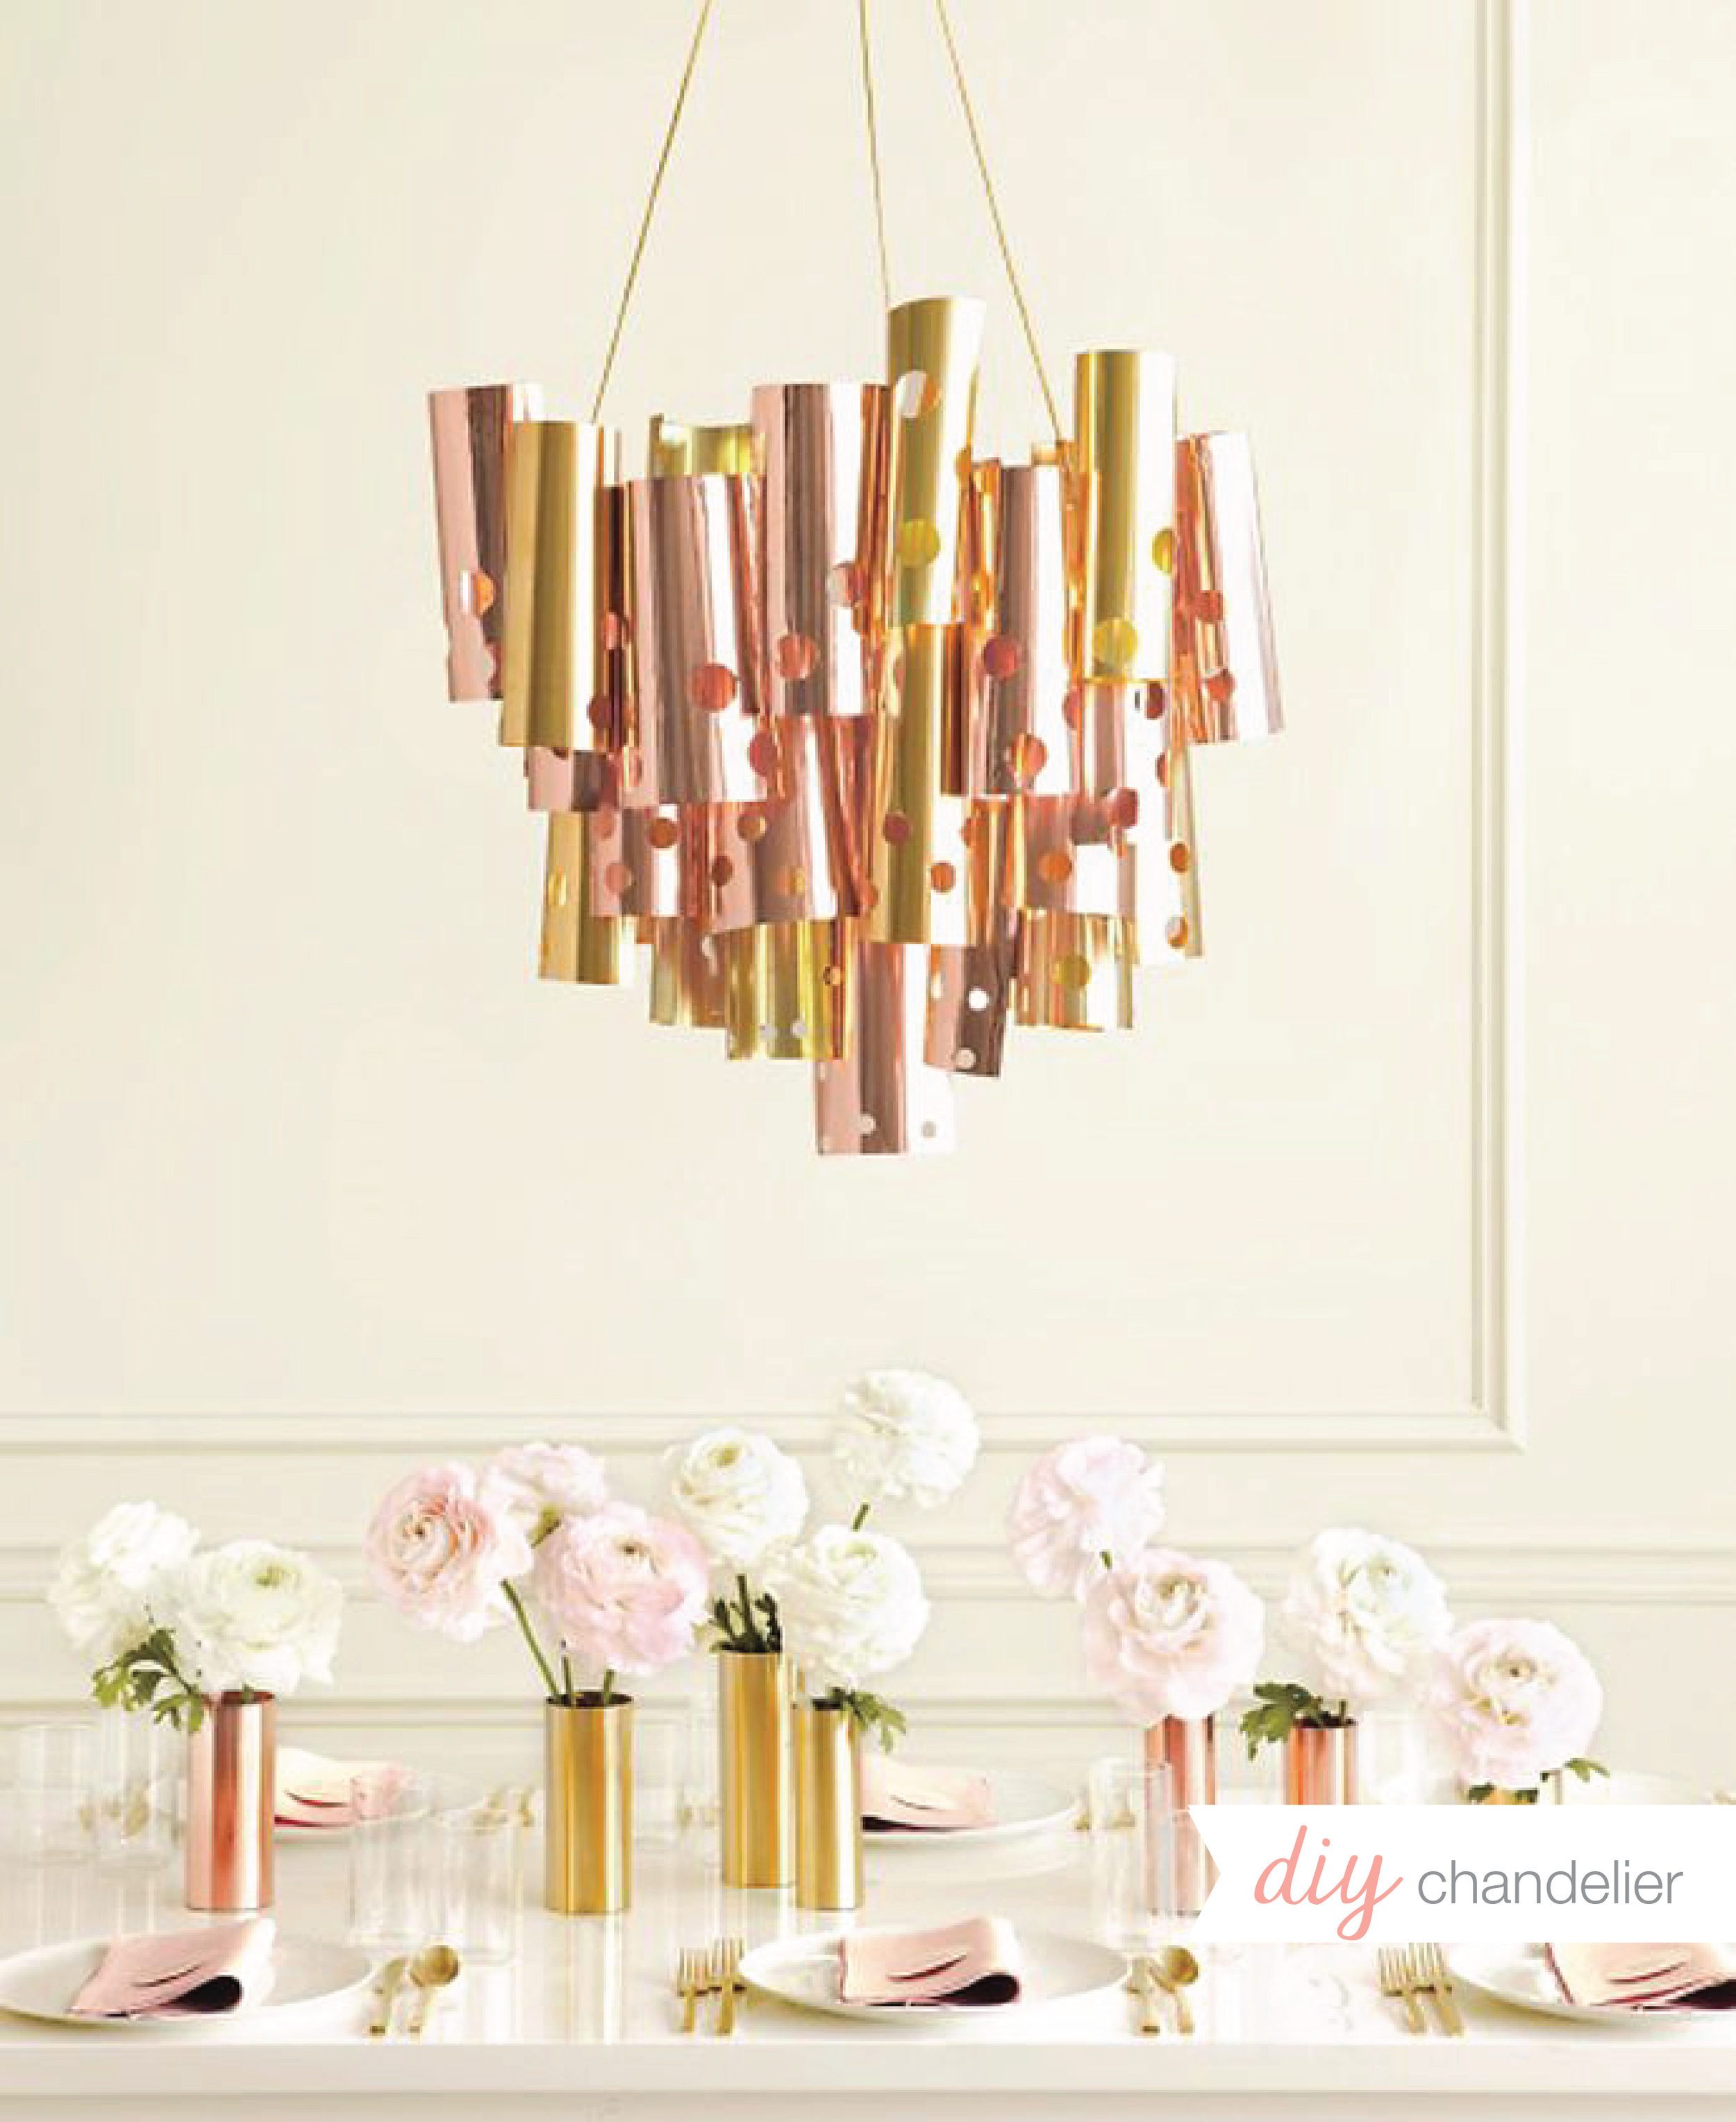 wedding-diy-metallic-chandelier-foil-sheets-tutorial-how-to.jpg